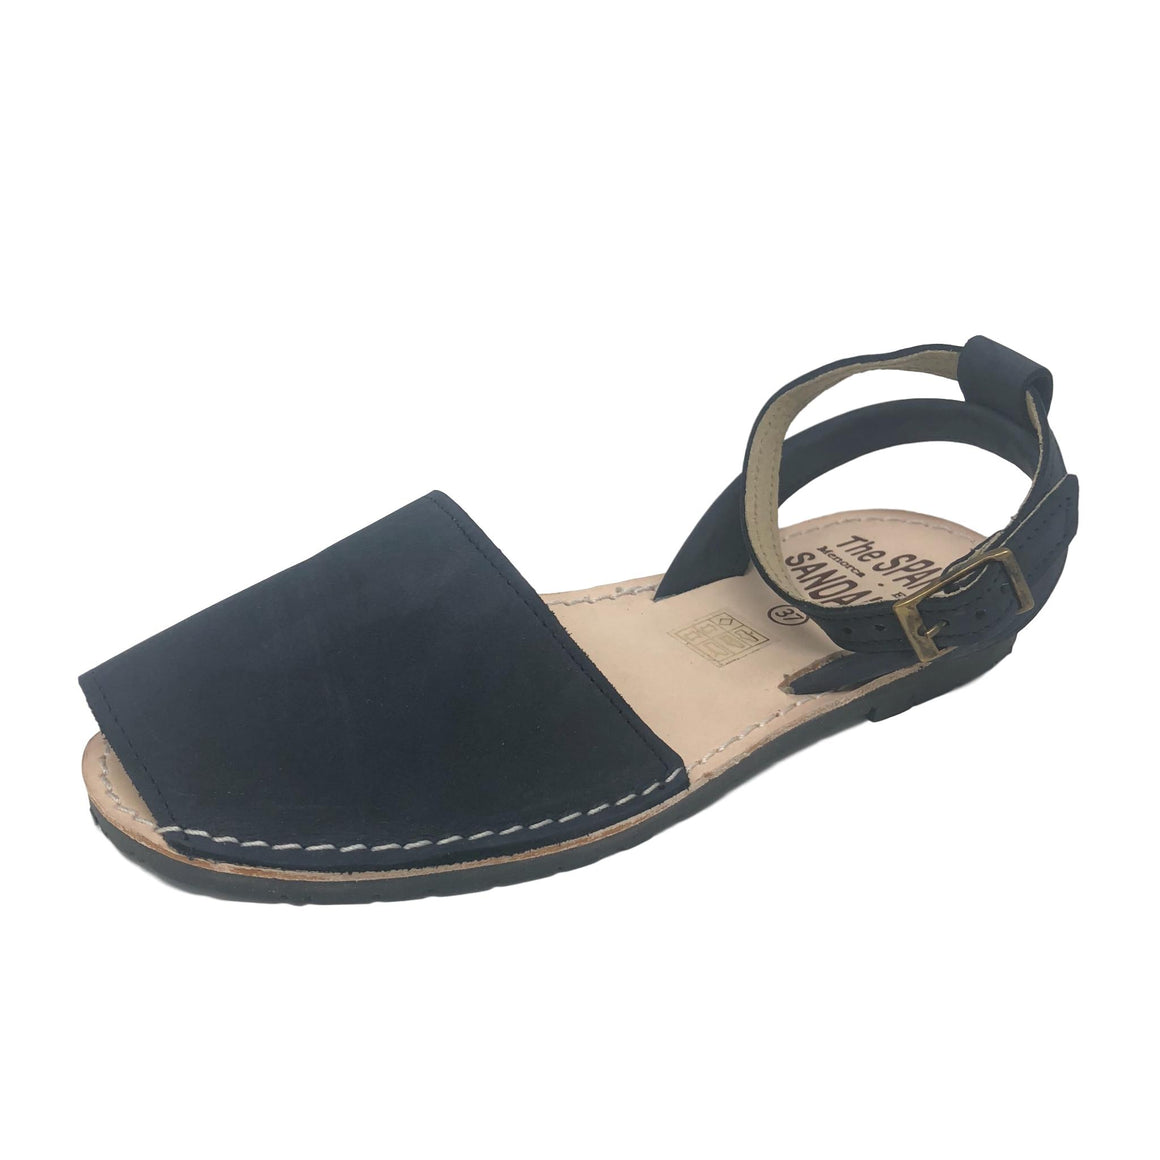 Dark blue with ankle strap